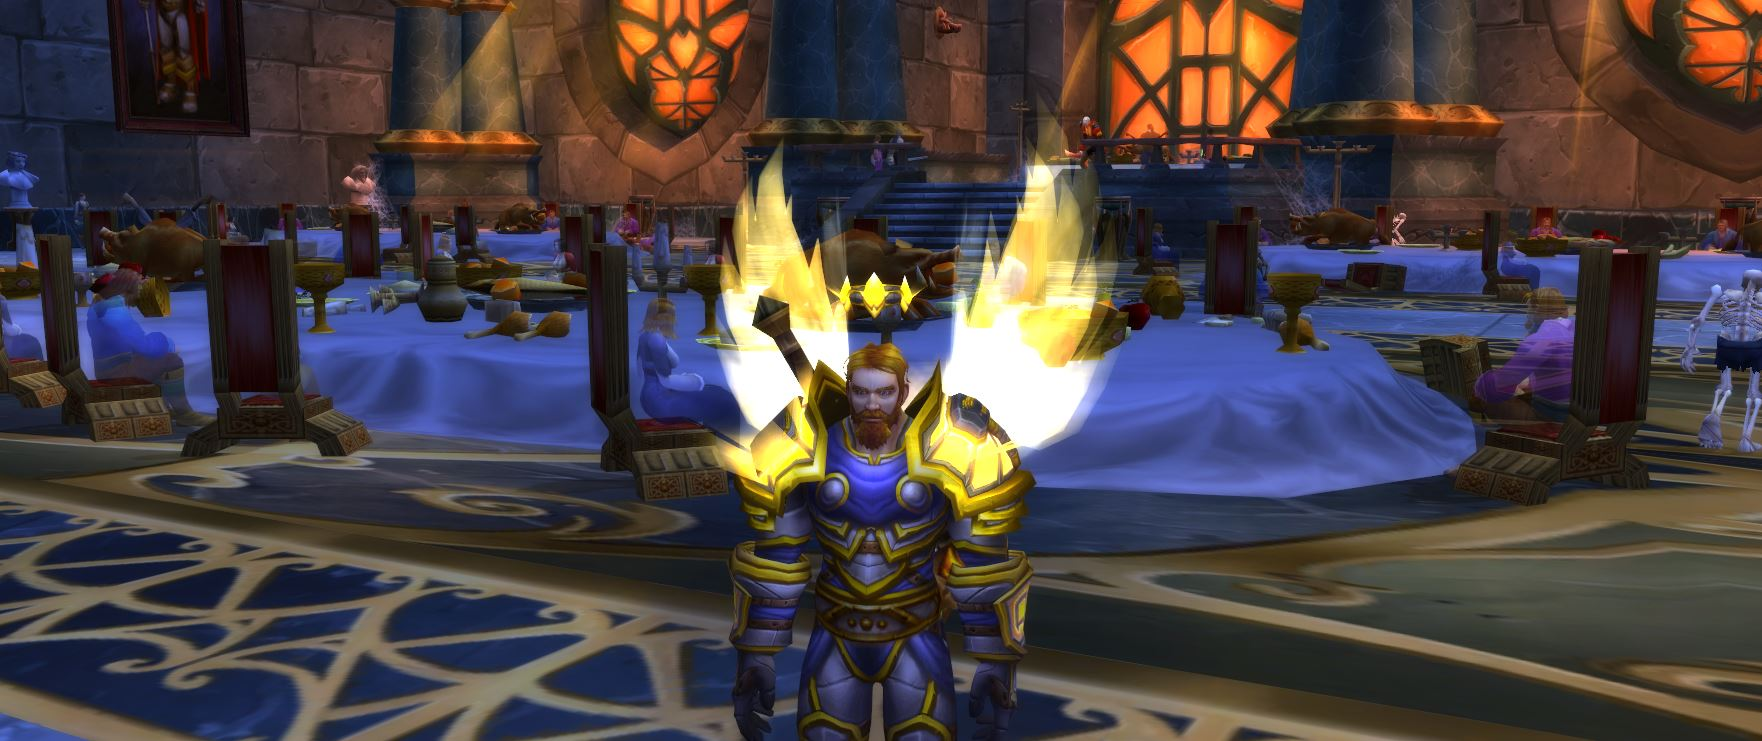 tbc classic pve retribution paladin rotation, cooldowns, & abilities burning crusade classic